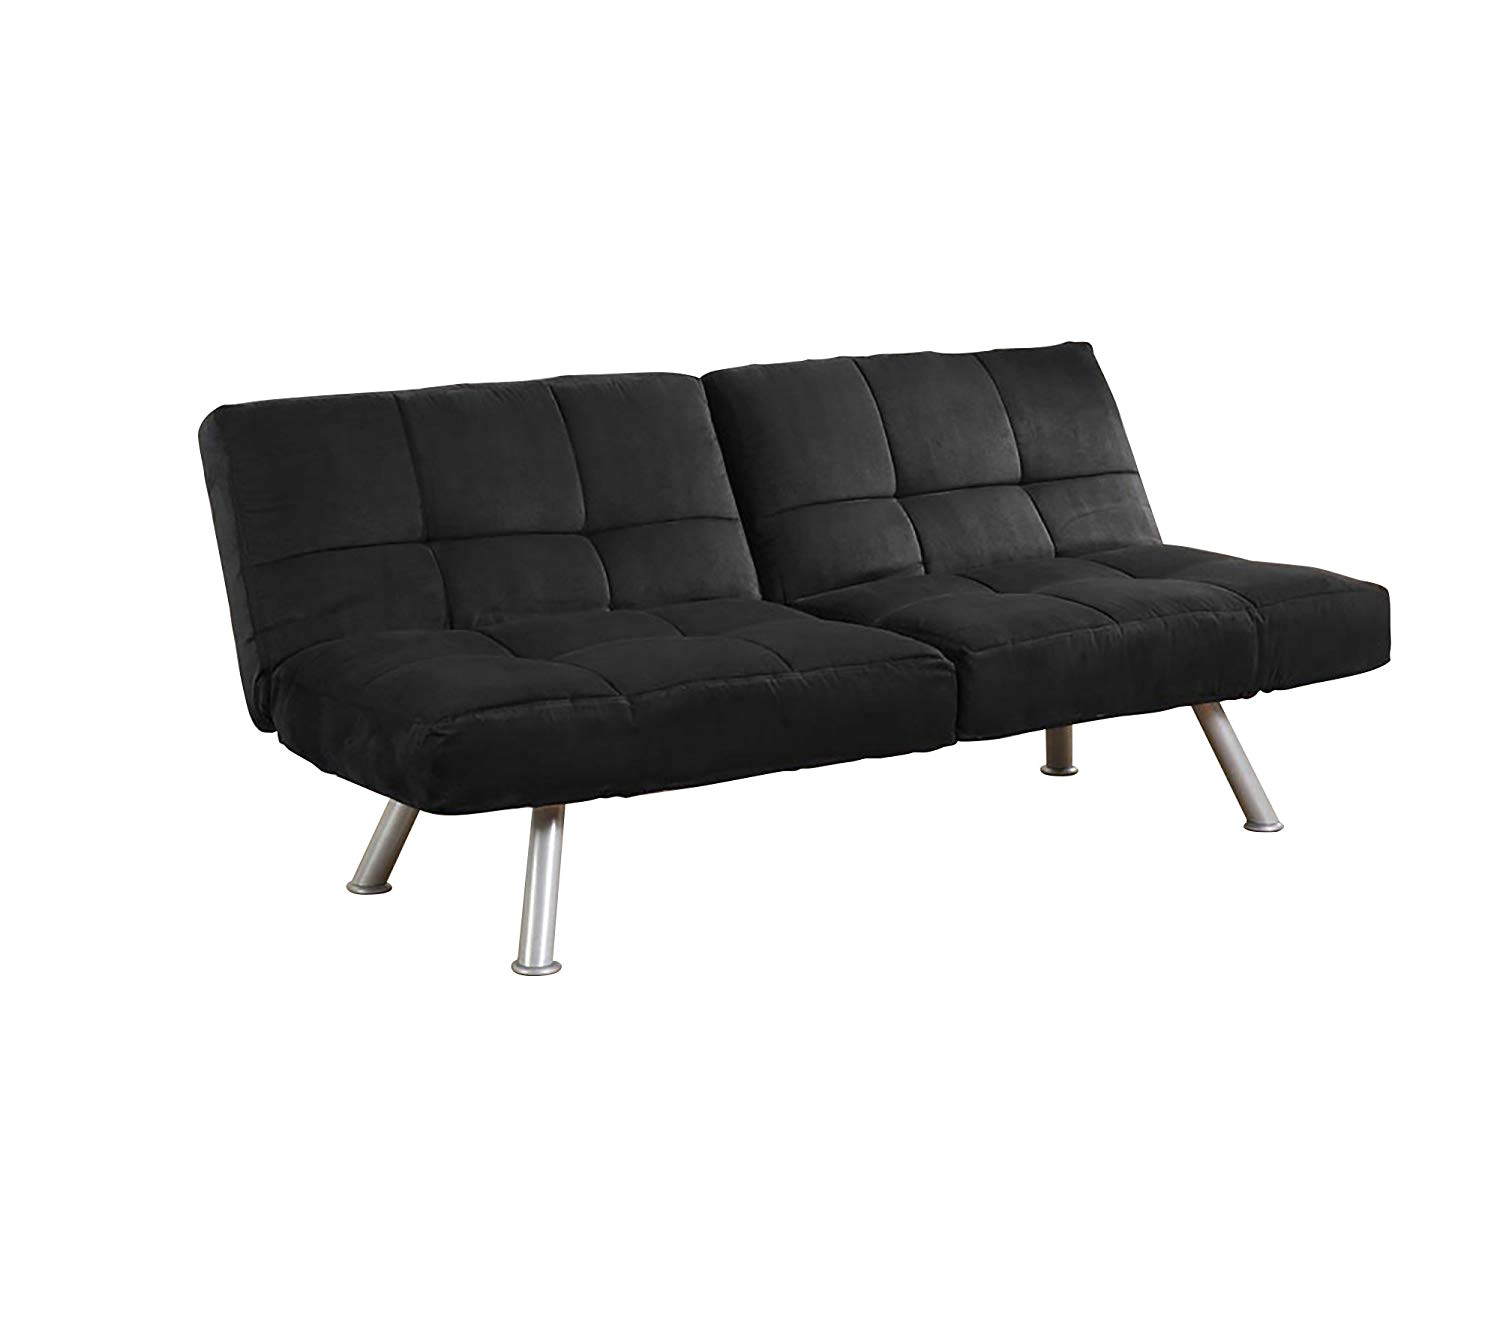 amazon com dhp kaila sofa sleeper convertible futon couch bed in premium black microsuede with adjustable armrests slanted metal legs and splitback